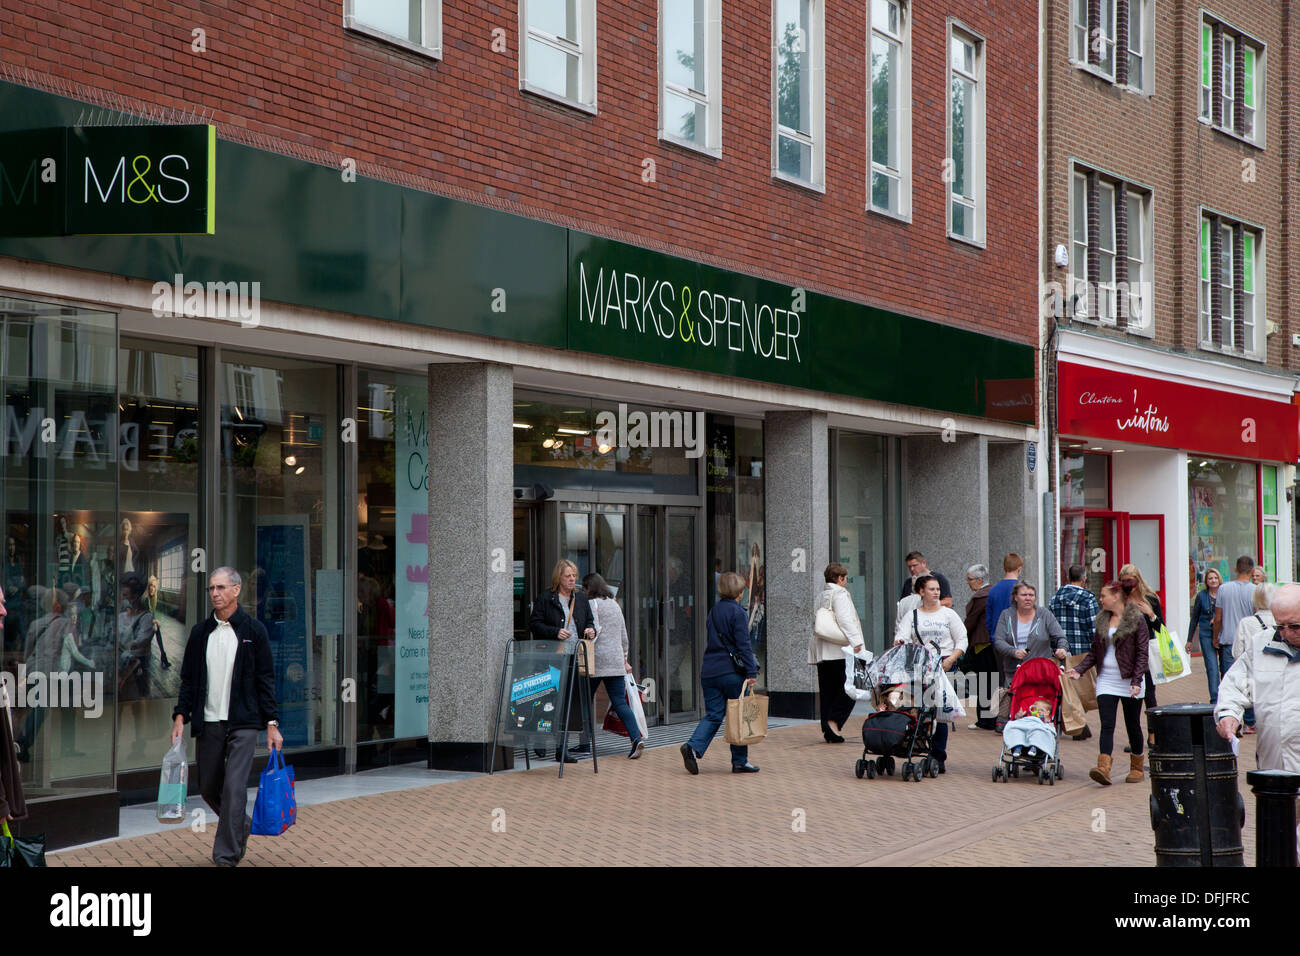 Marks and Spencer in Chelmsford, Essex - Stock Image